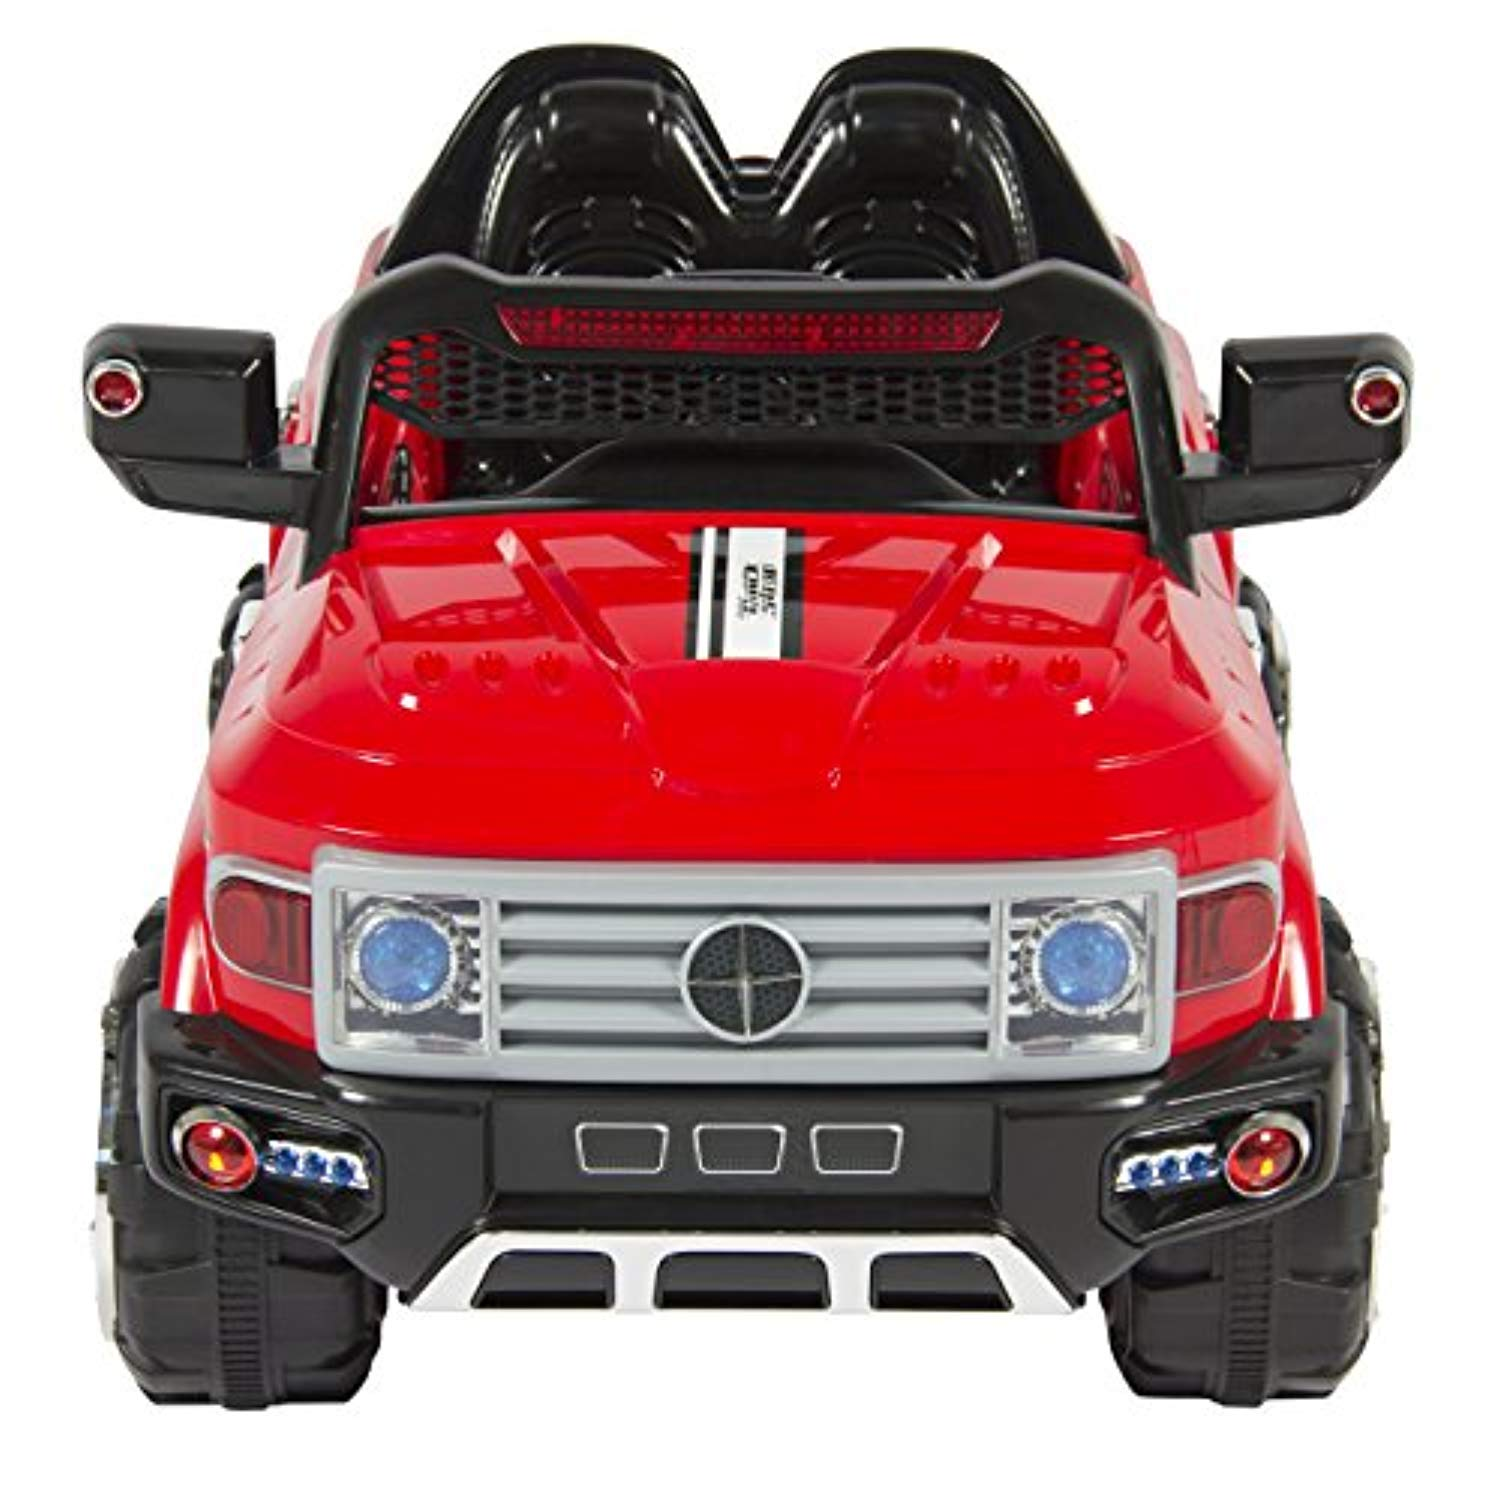 Best Choice Products 12V Kids Battery Powered RC Remote Control Truck SUV Ride-On Car w/ 2 Speeds- Red